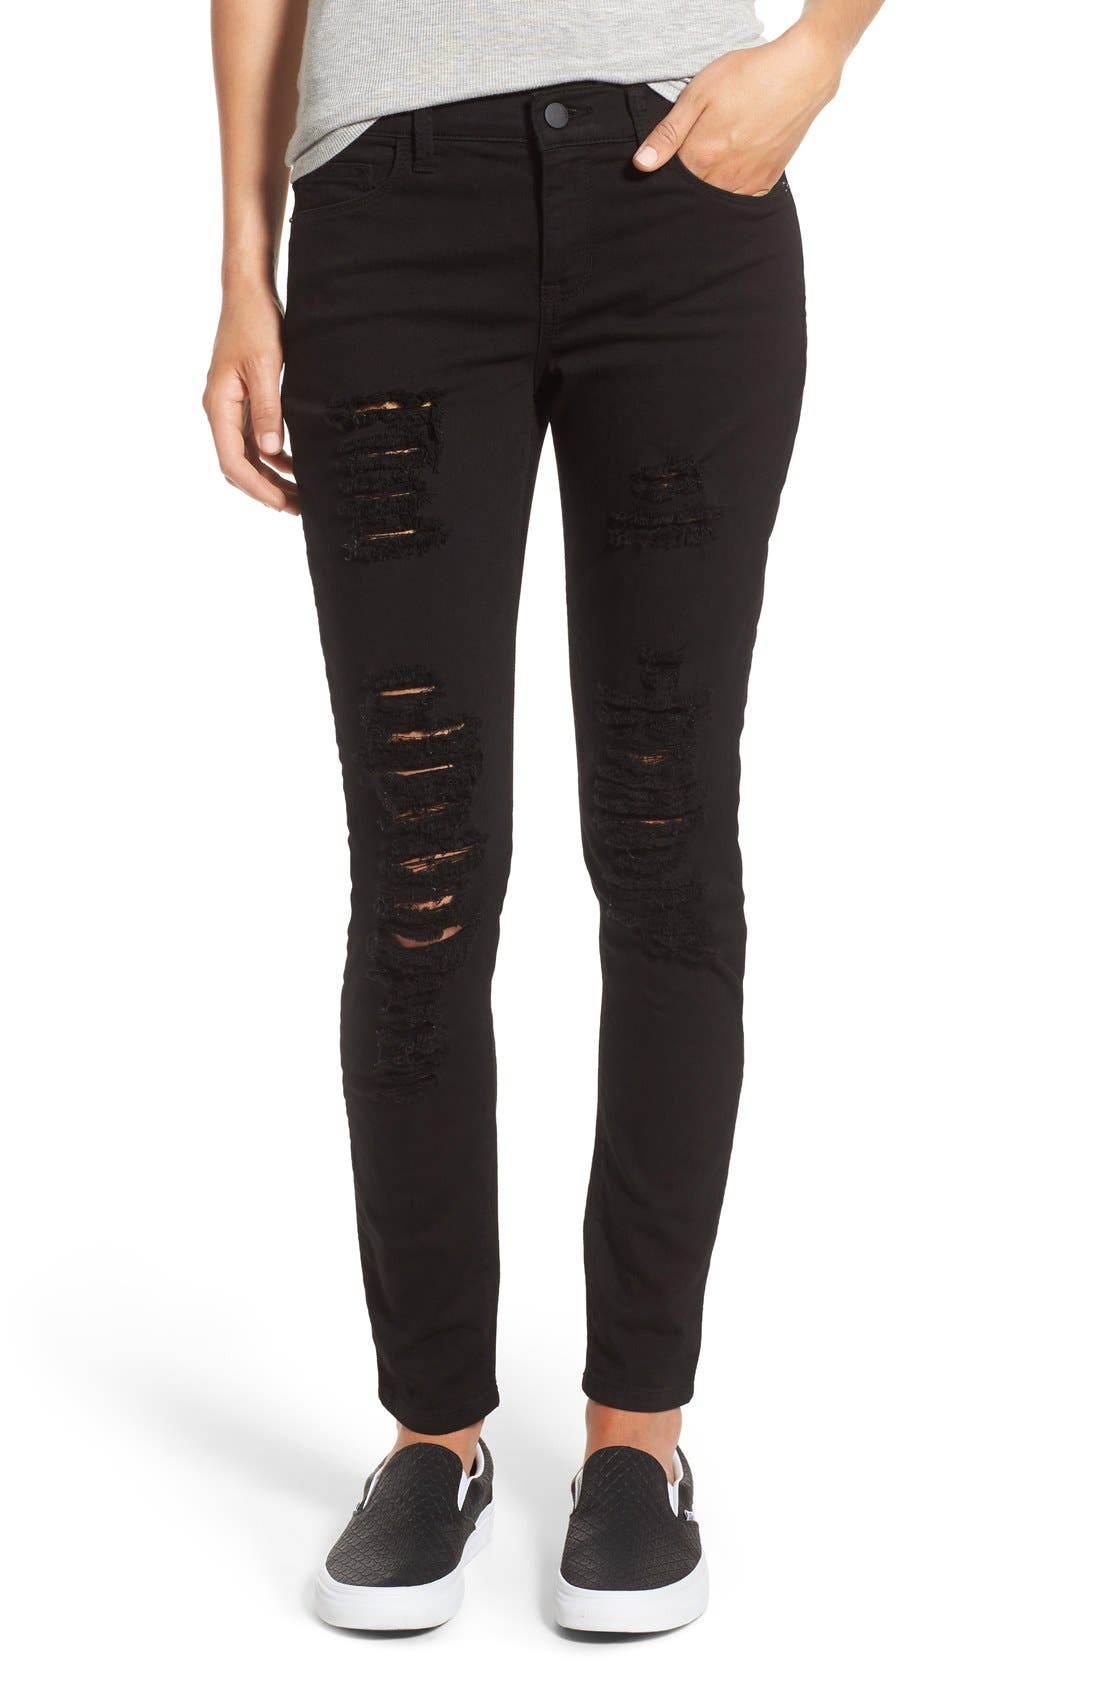 Choose from men's skinny jeans, ripped styles and slim fit jeans available in a range of colours. Spray On Skinny Jeans With Destroyed Zip Hem £ £ Super Skinny Stretch Denim Grey Jeans Spray On Skinny Jeans In Black £ £ Spray On Skinny Jeans In Antique Wash £ £ Skinny Fit Biker Jeans £ £